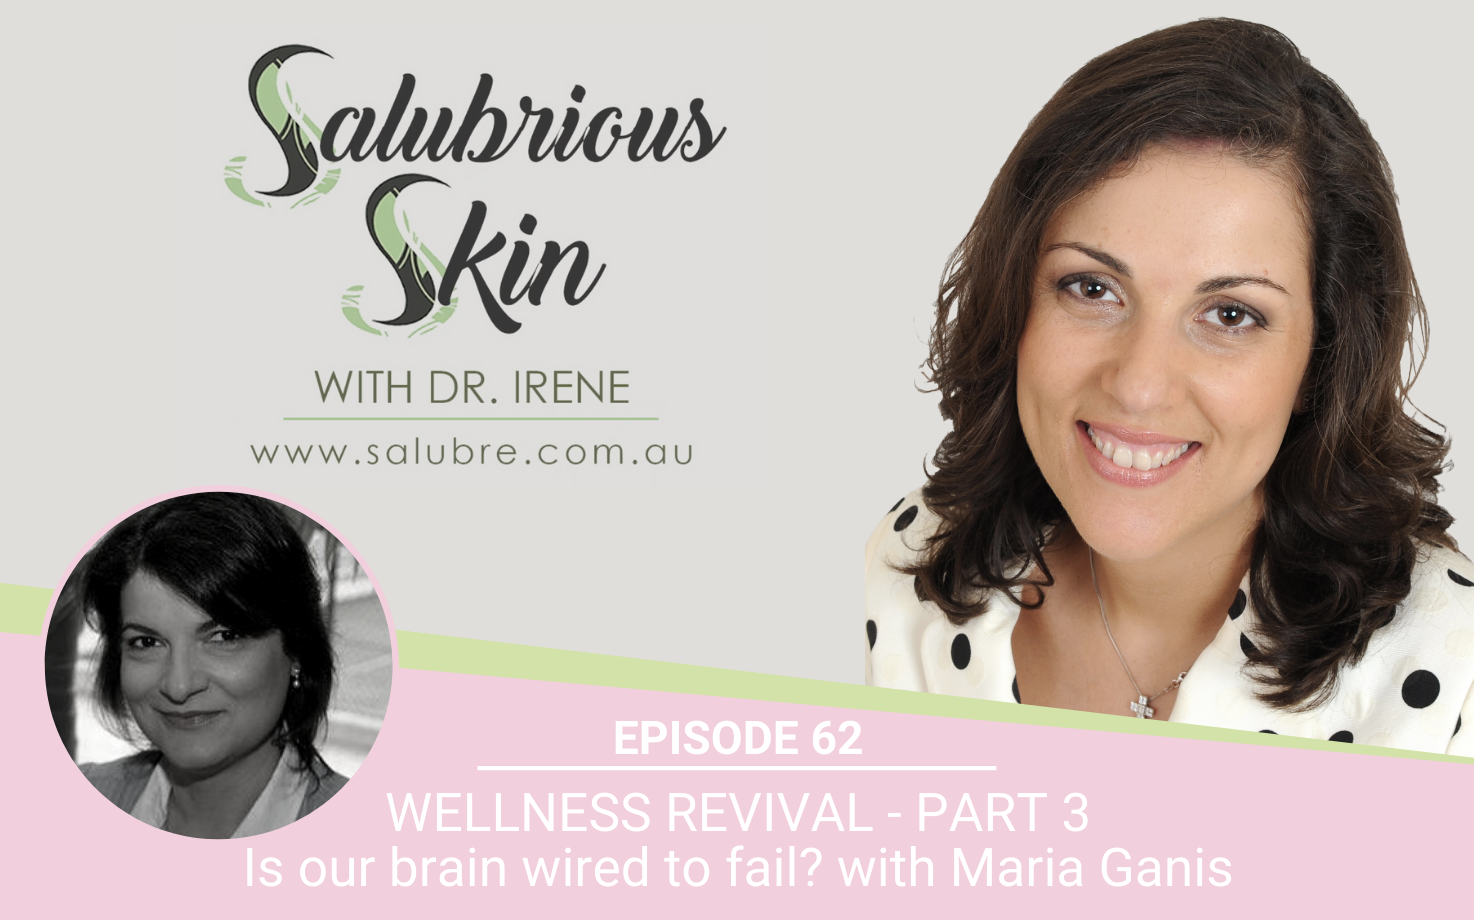 Podcast 62: Wellness Revival - Part 3: Is our brain wired to fail? Interview with coach Maria Ganis